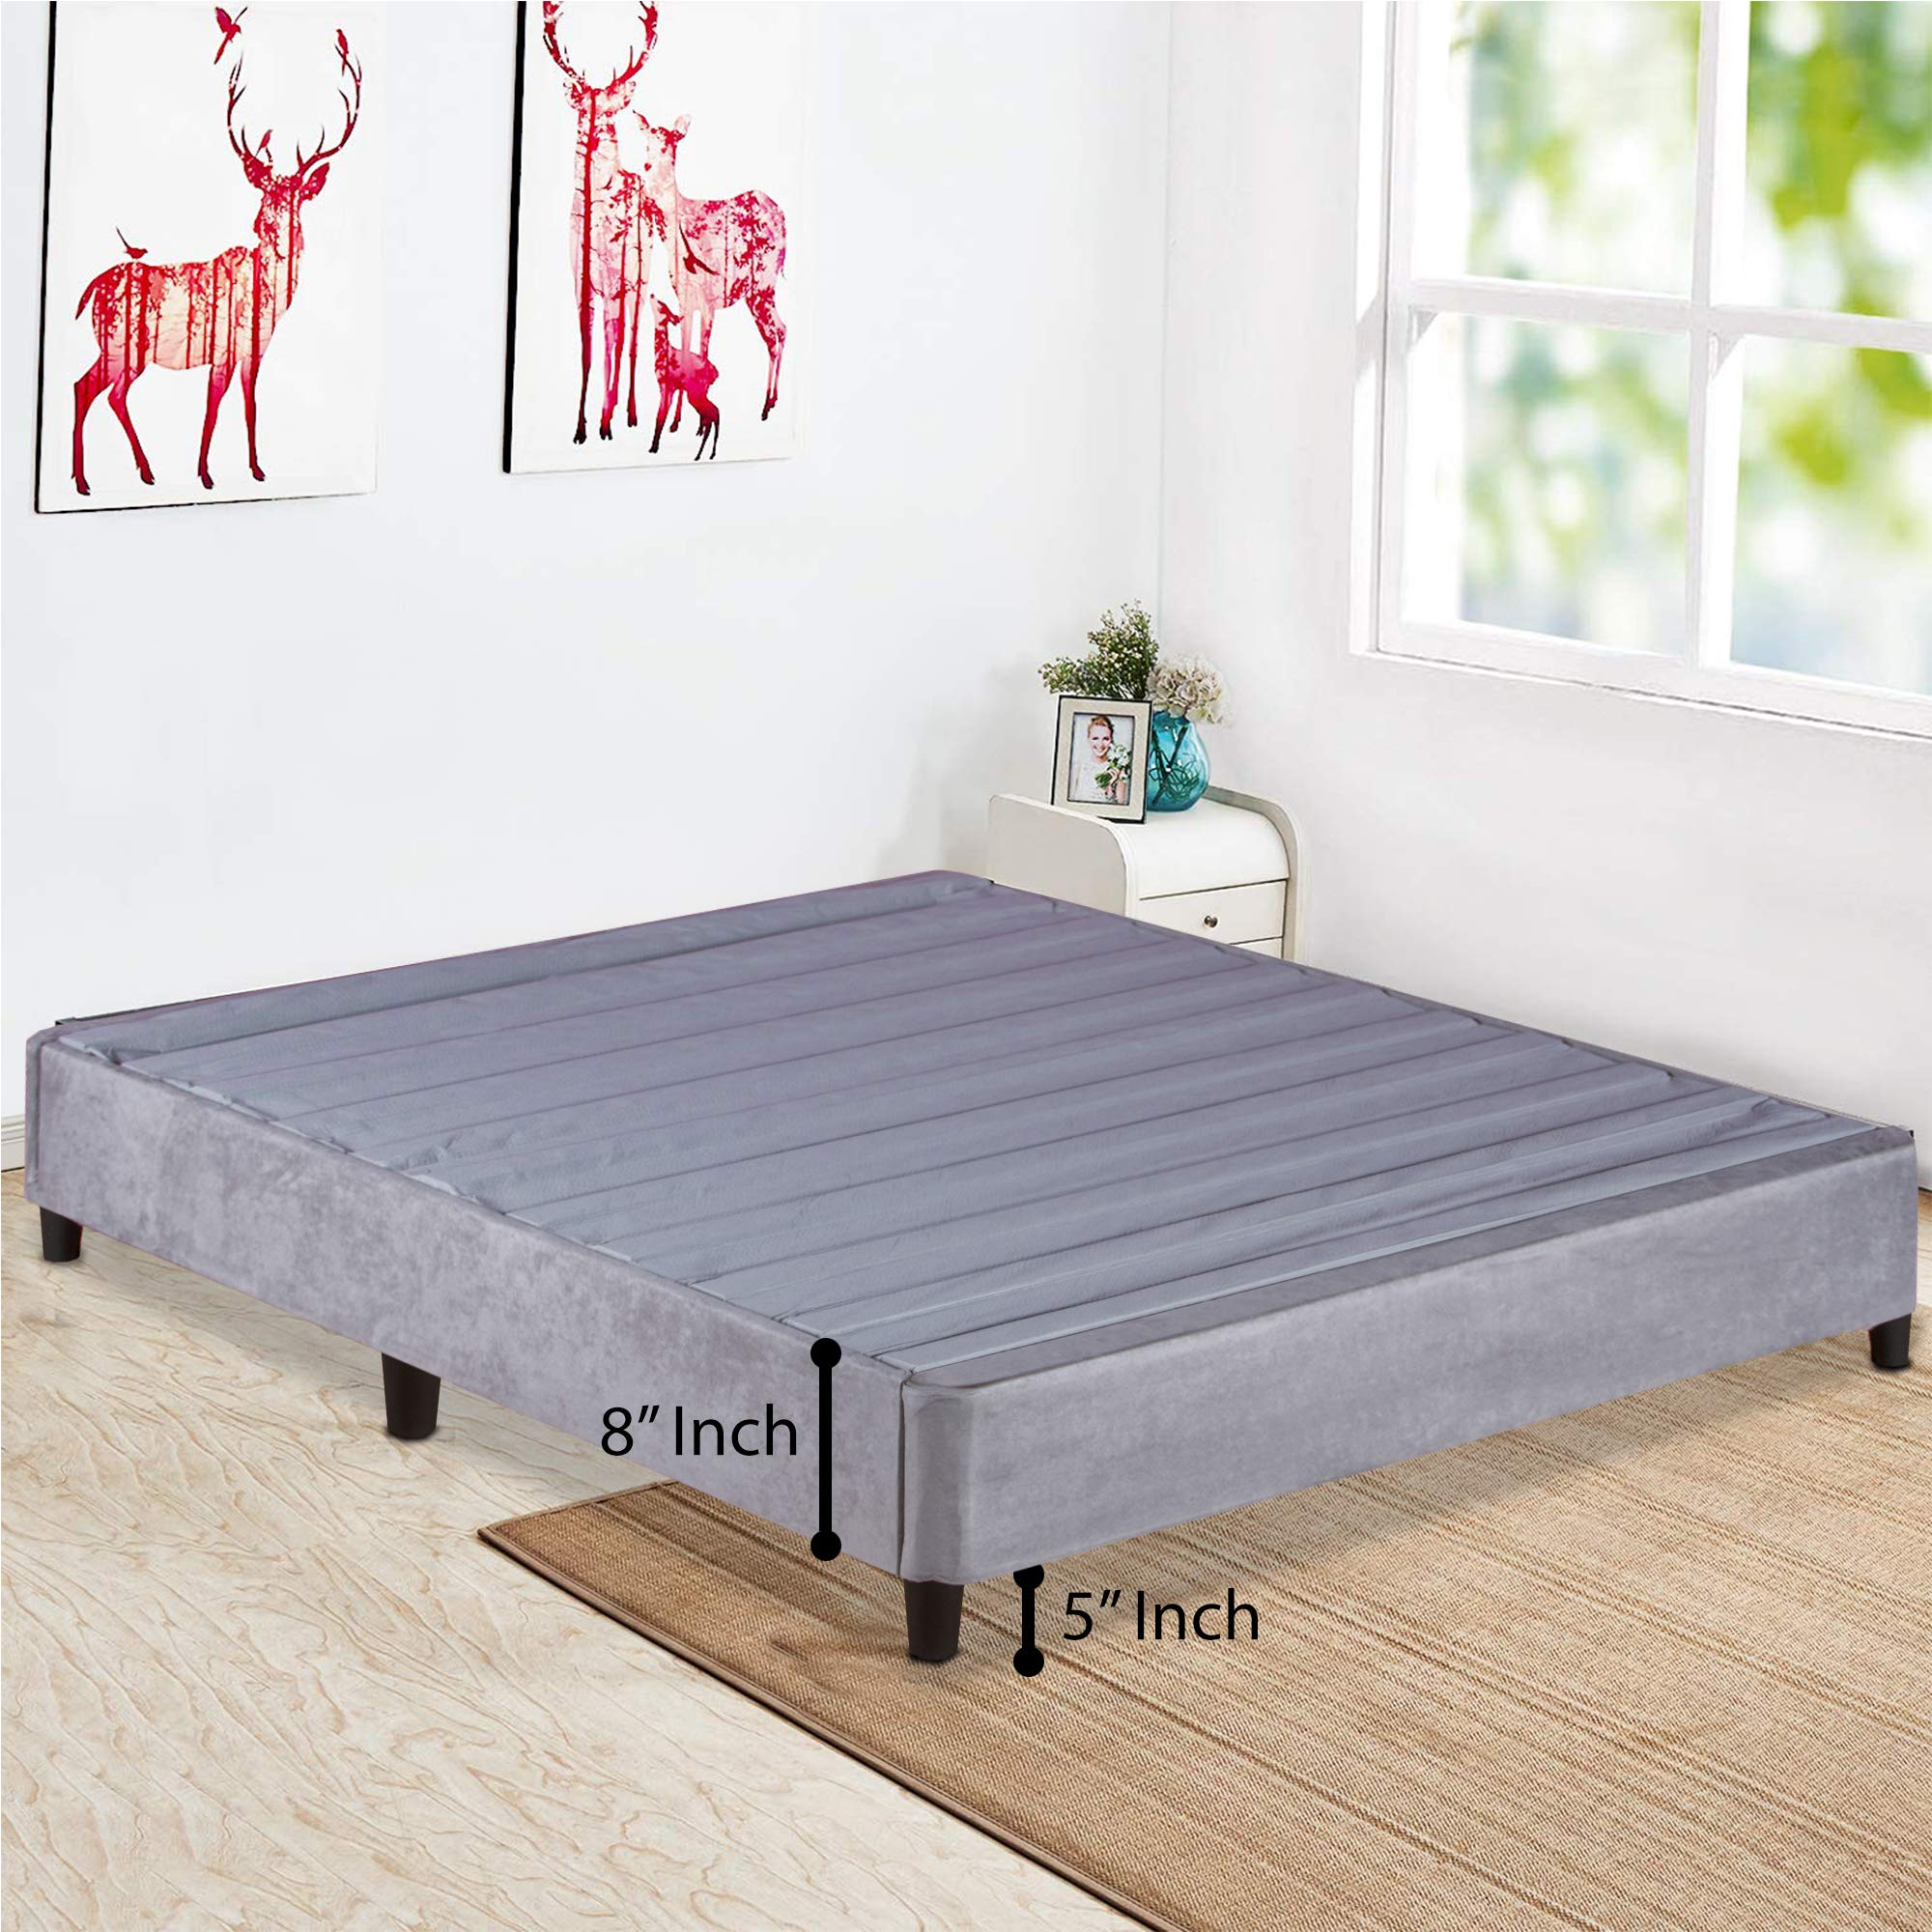 Spring Solution, Platform Bed For Mattress, Eliminates Need Of Box Spring and Bed Frame, Queen size by Spring Solution